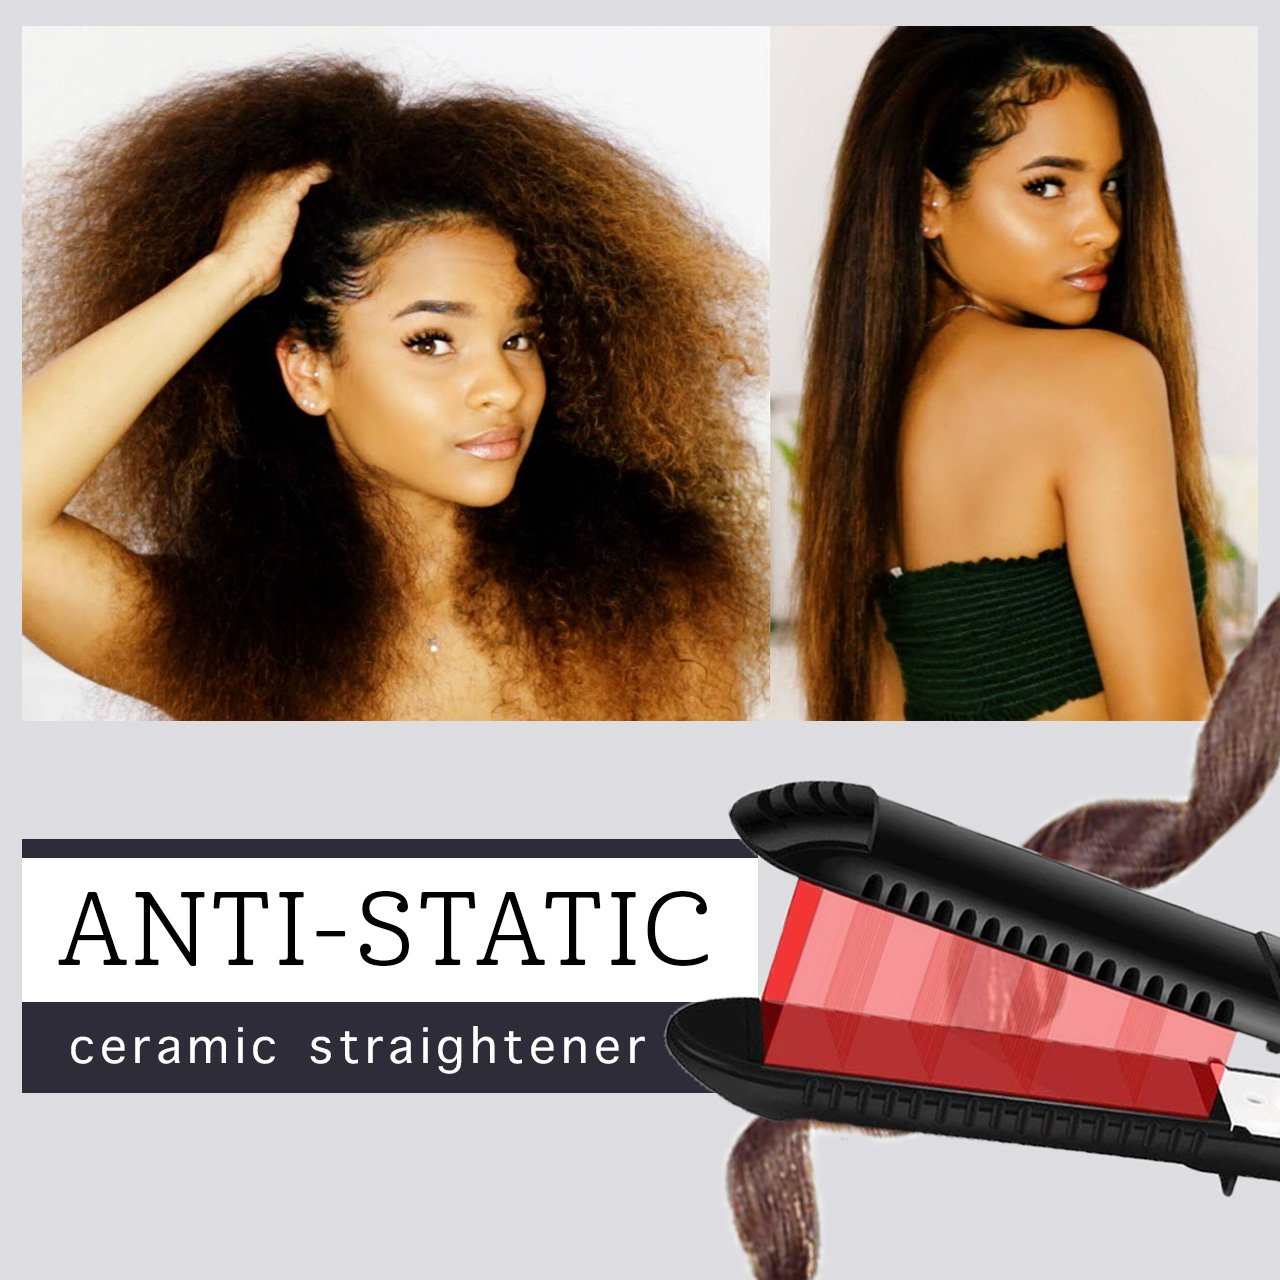 Anti-Static Ceramic Straightener